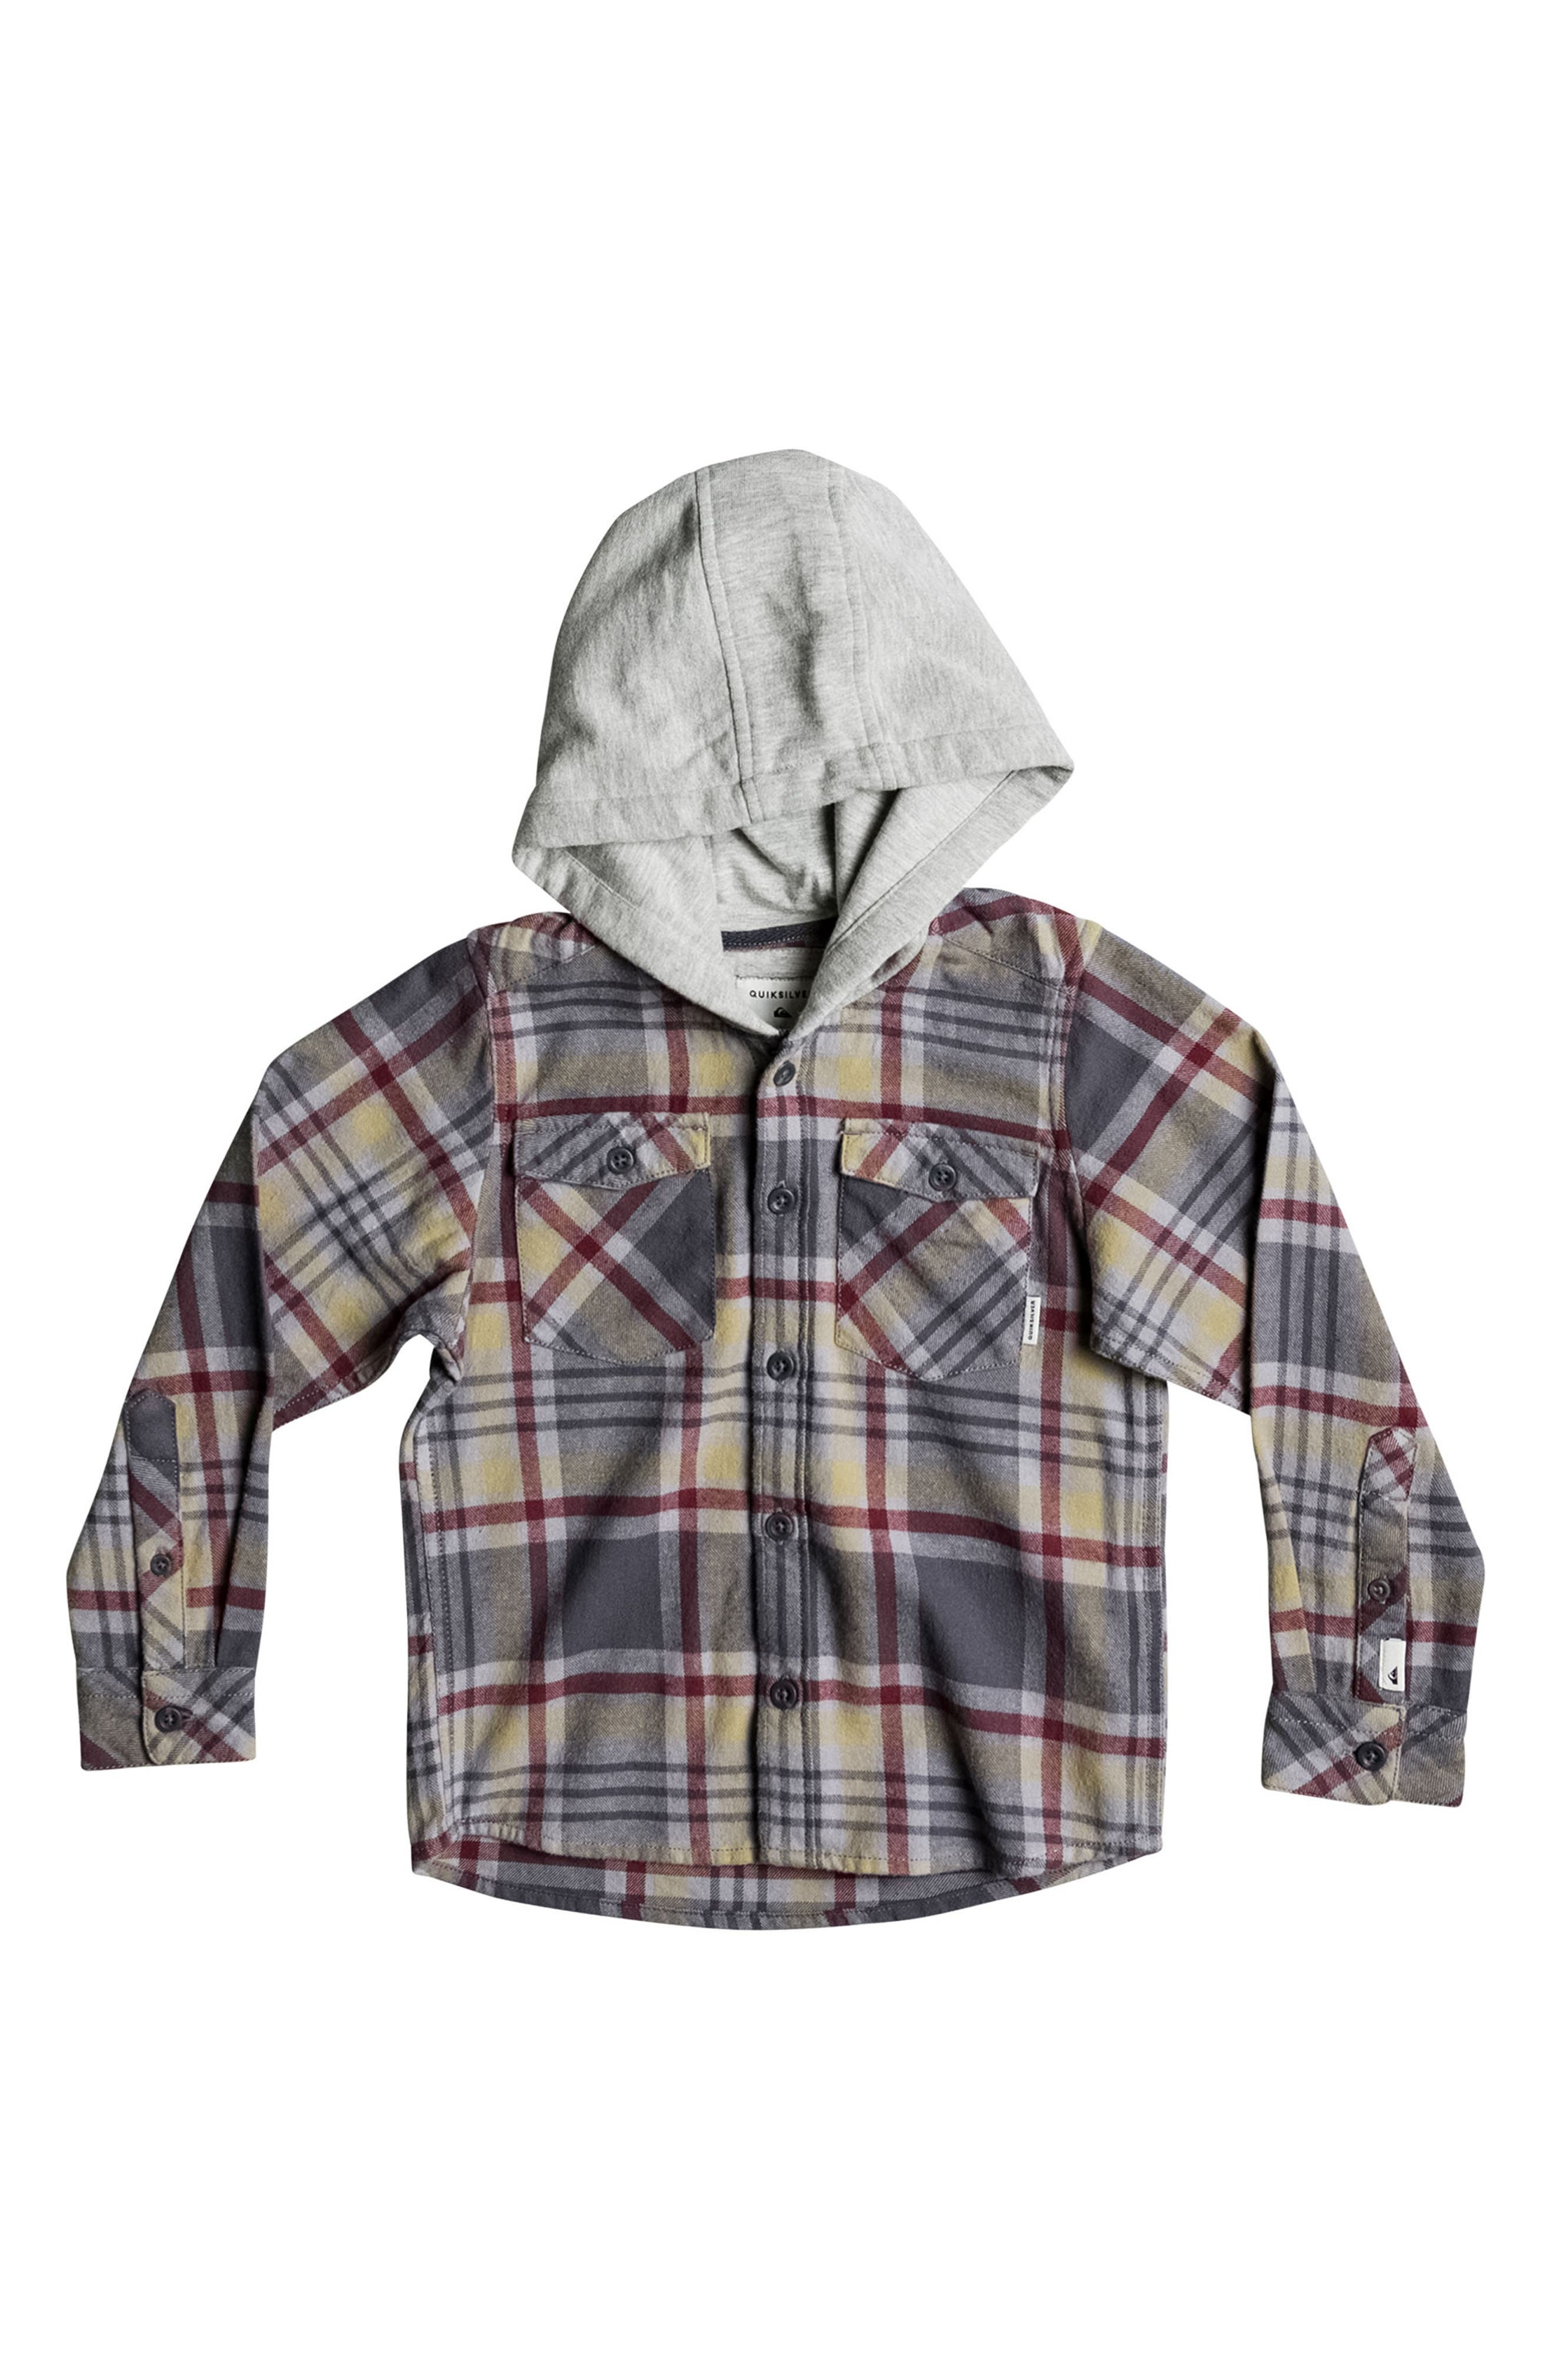 Quiksilver Hooded Plaid Flannel Shirt (Toddler Boys & Little Boys)